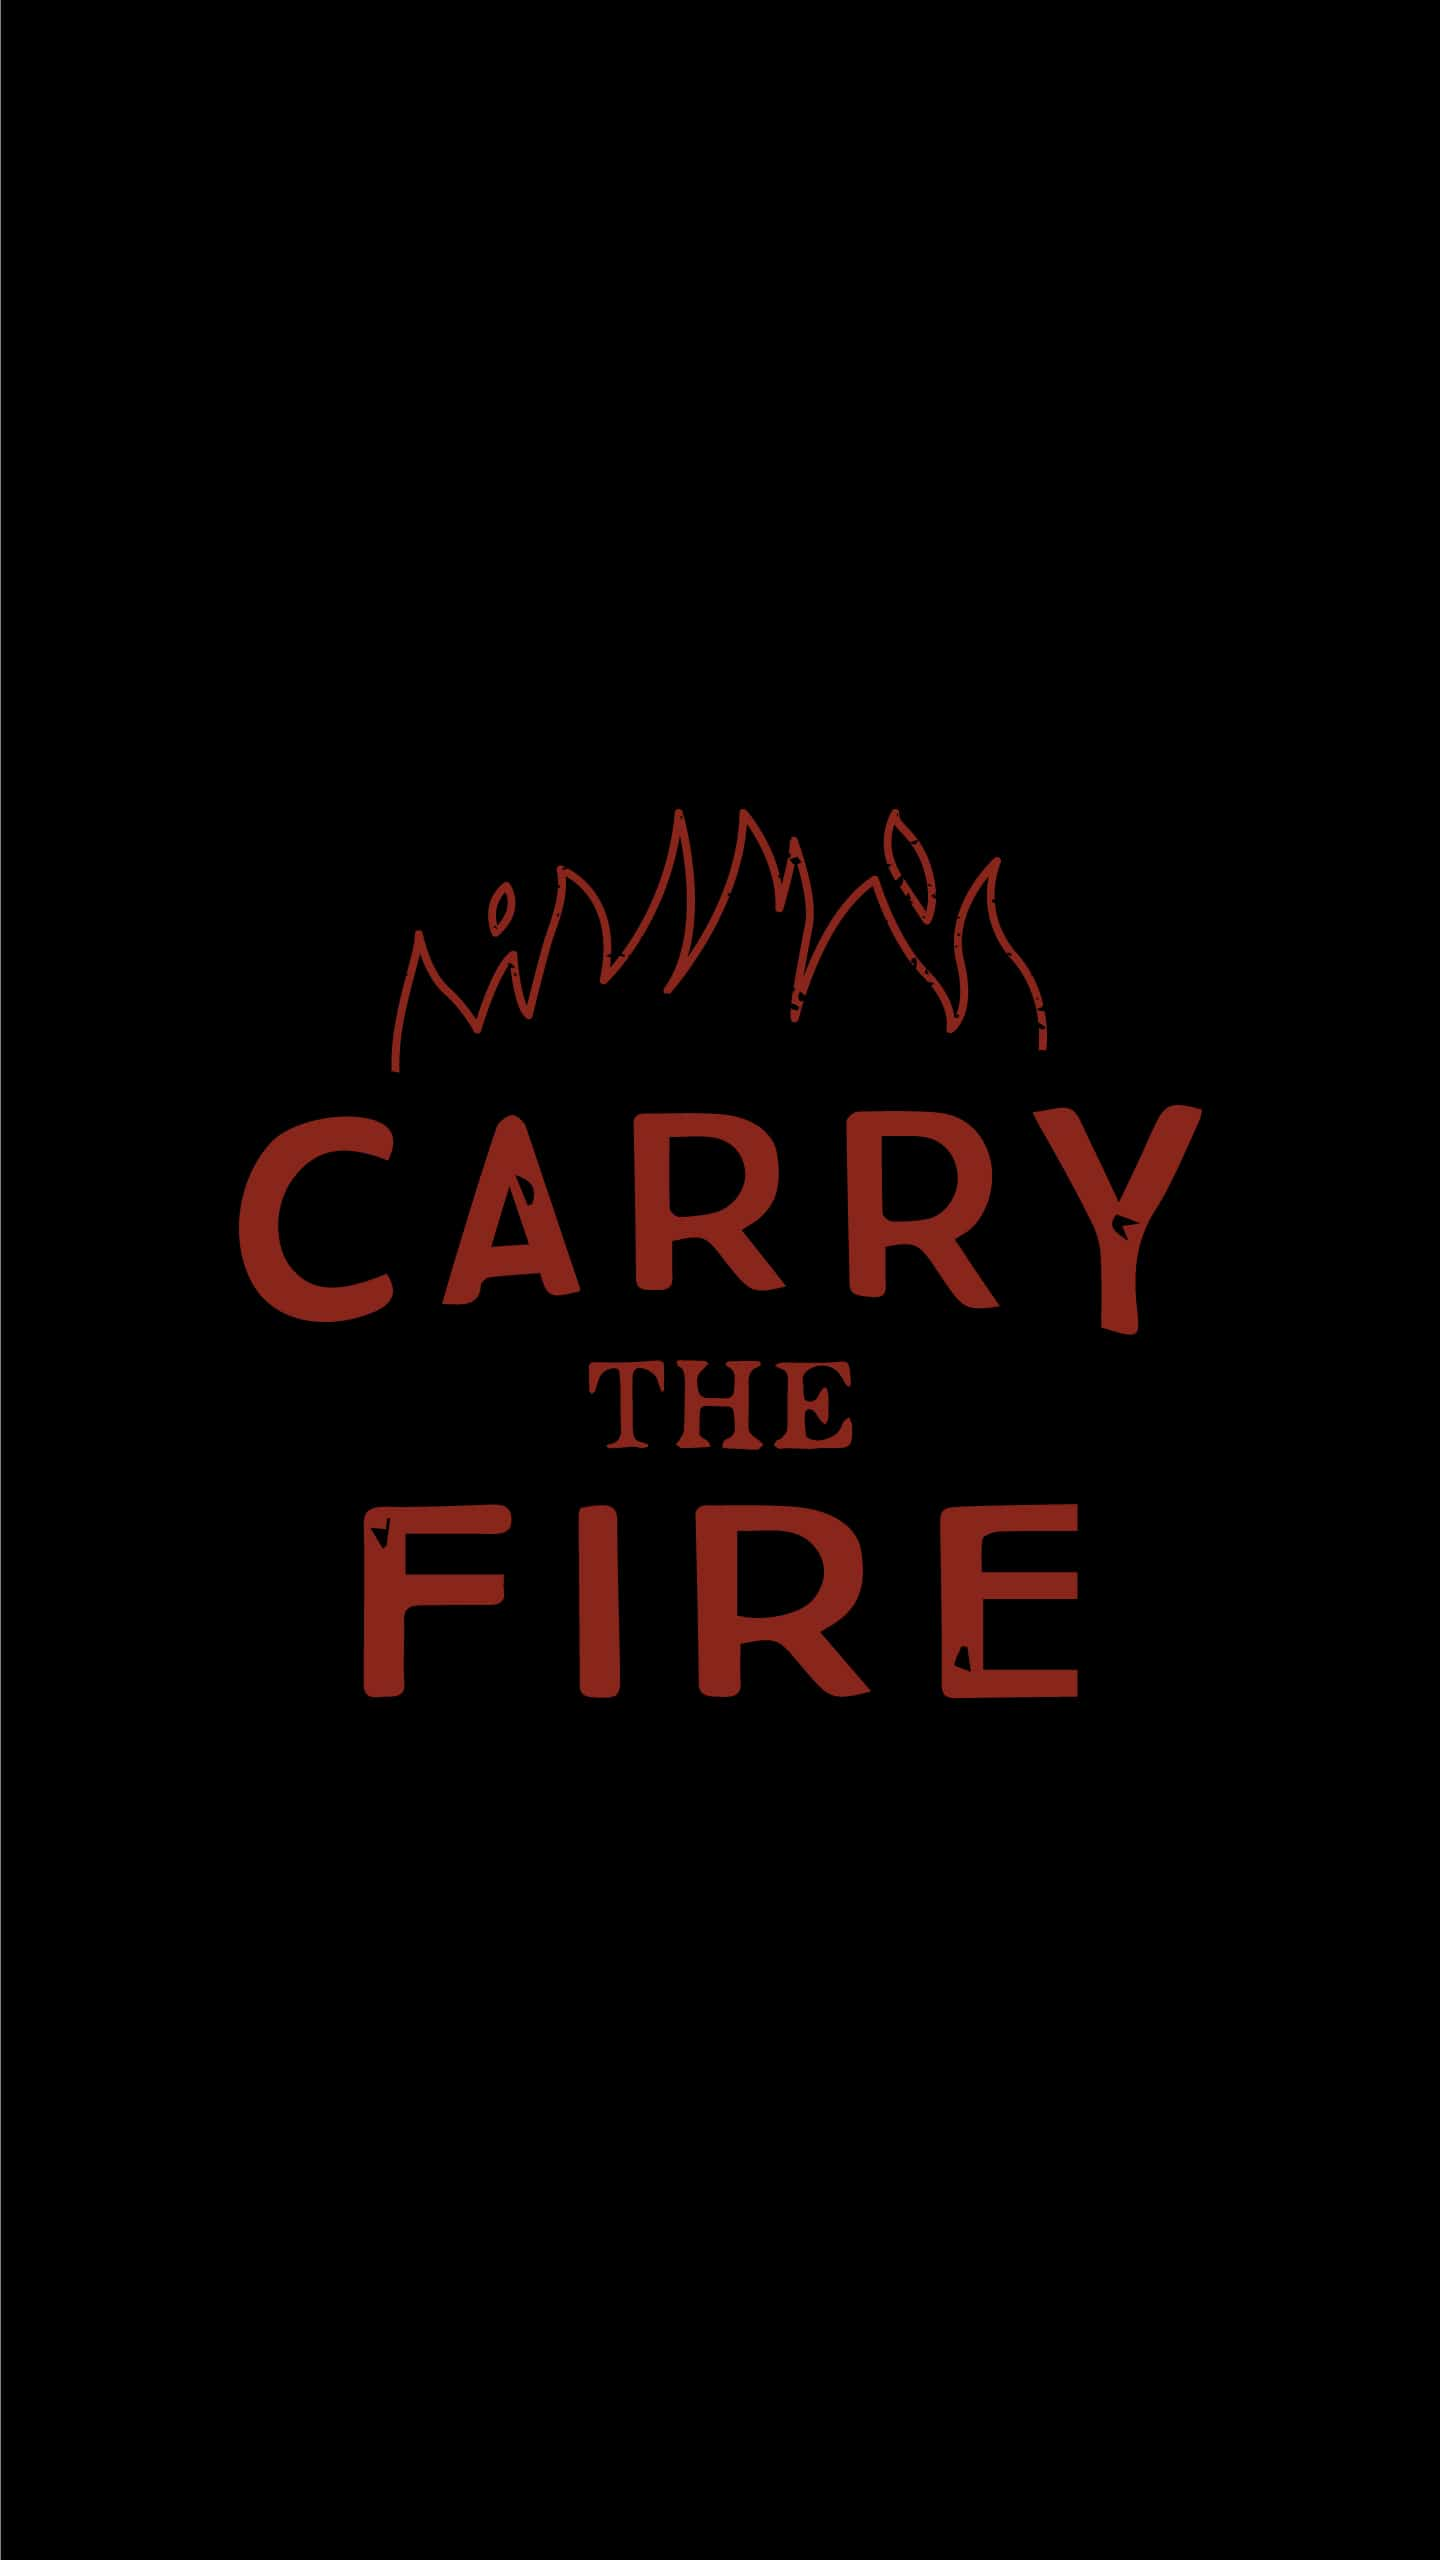 carry-the-fire-wallpaper-1